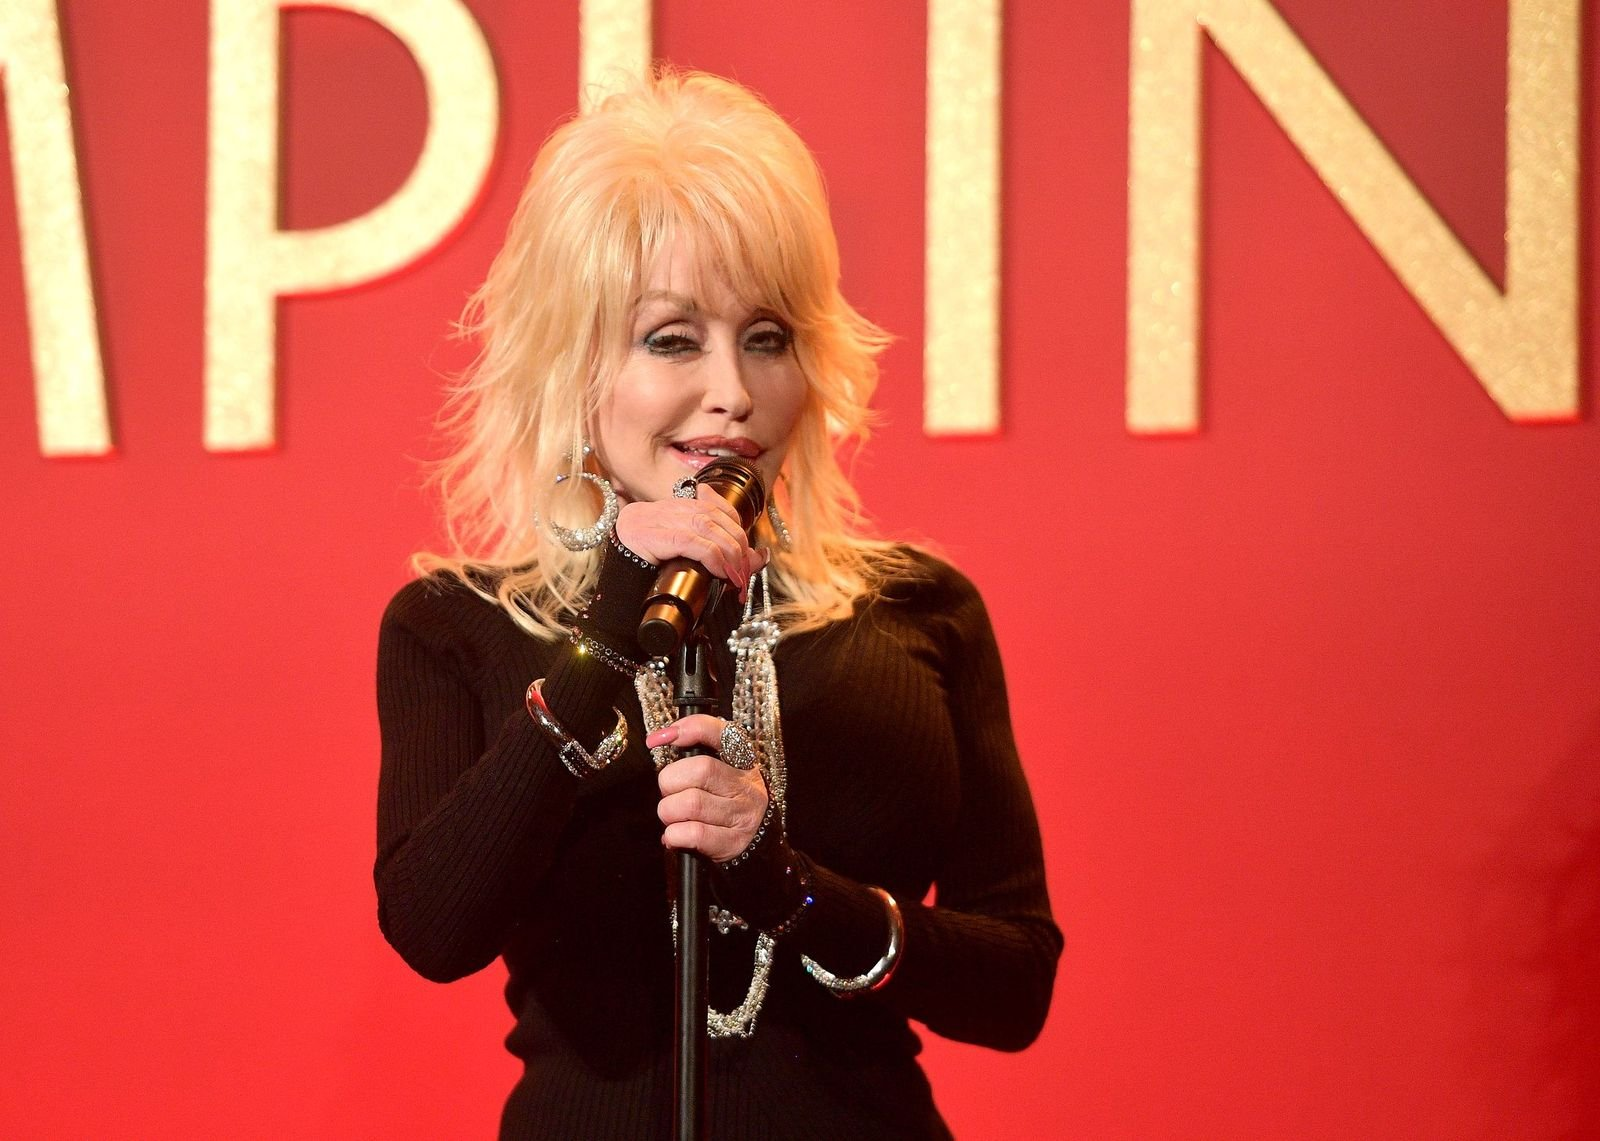 Dolly Parton performs onstage at a luncheon for the Netflix Film Dumplin' at Four Seasons Hotel Los Angeles at Beverly Hills on October 22, 2018 | Photo: Getty Images